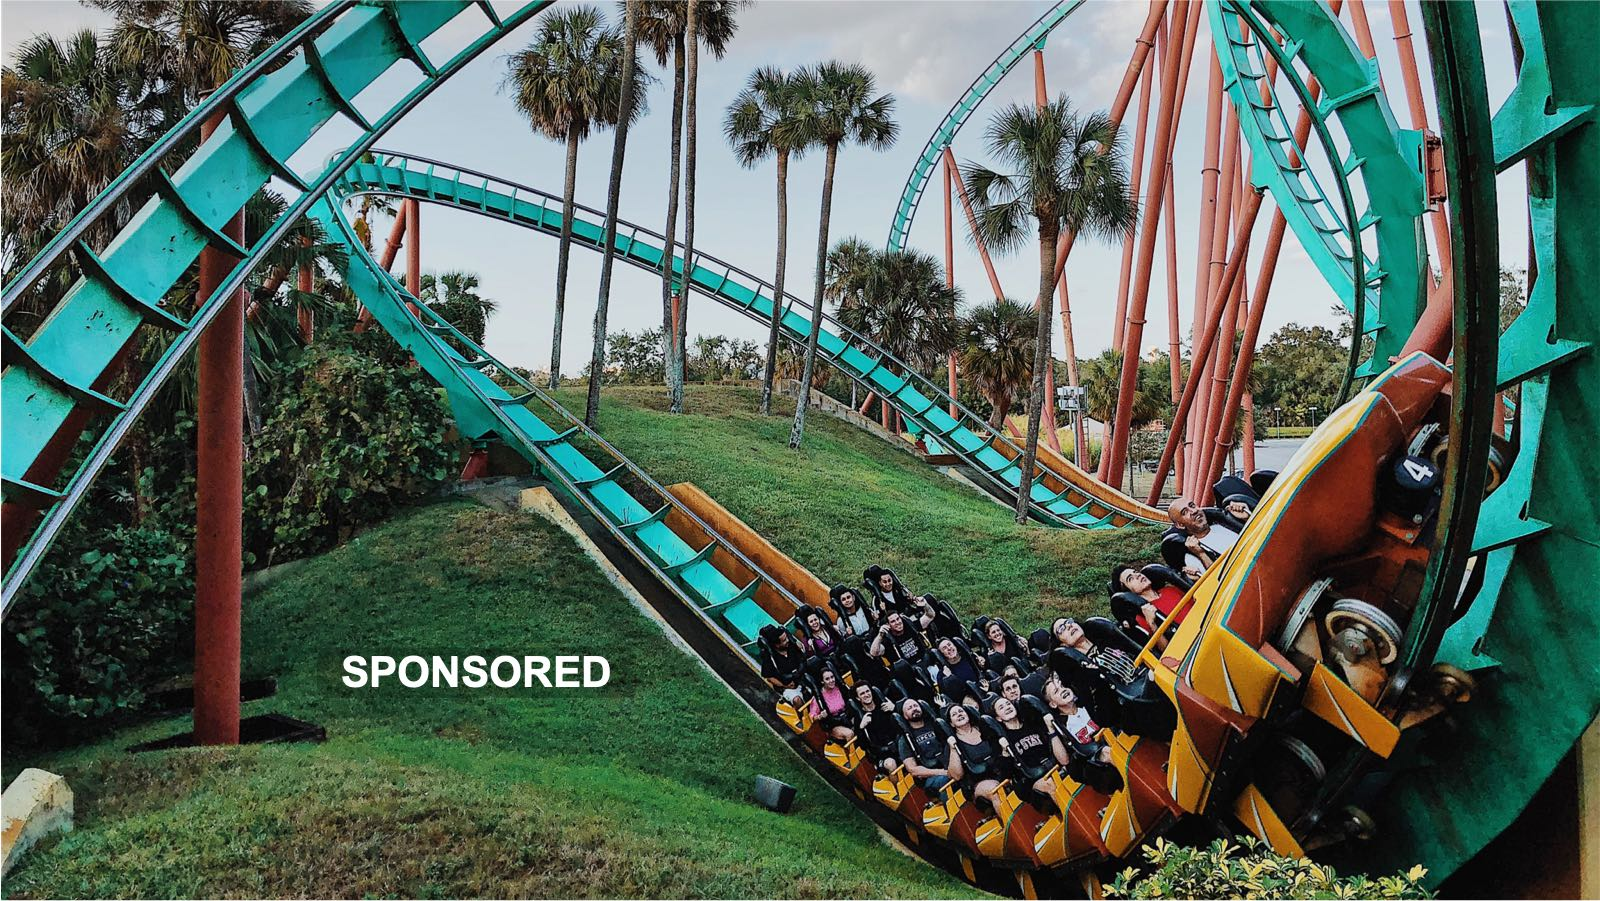 Rollercoaster, as in 2020 markets.